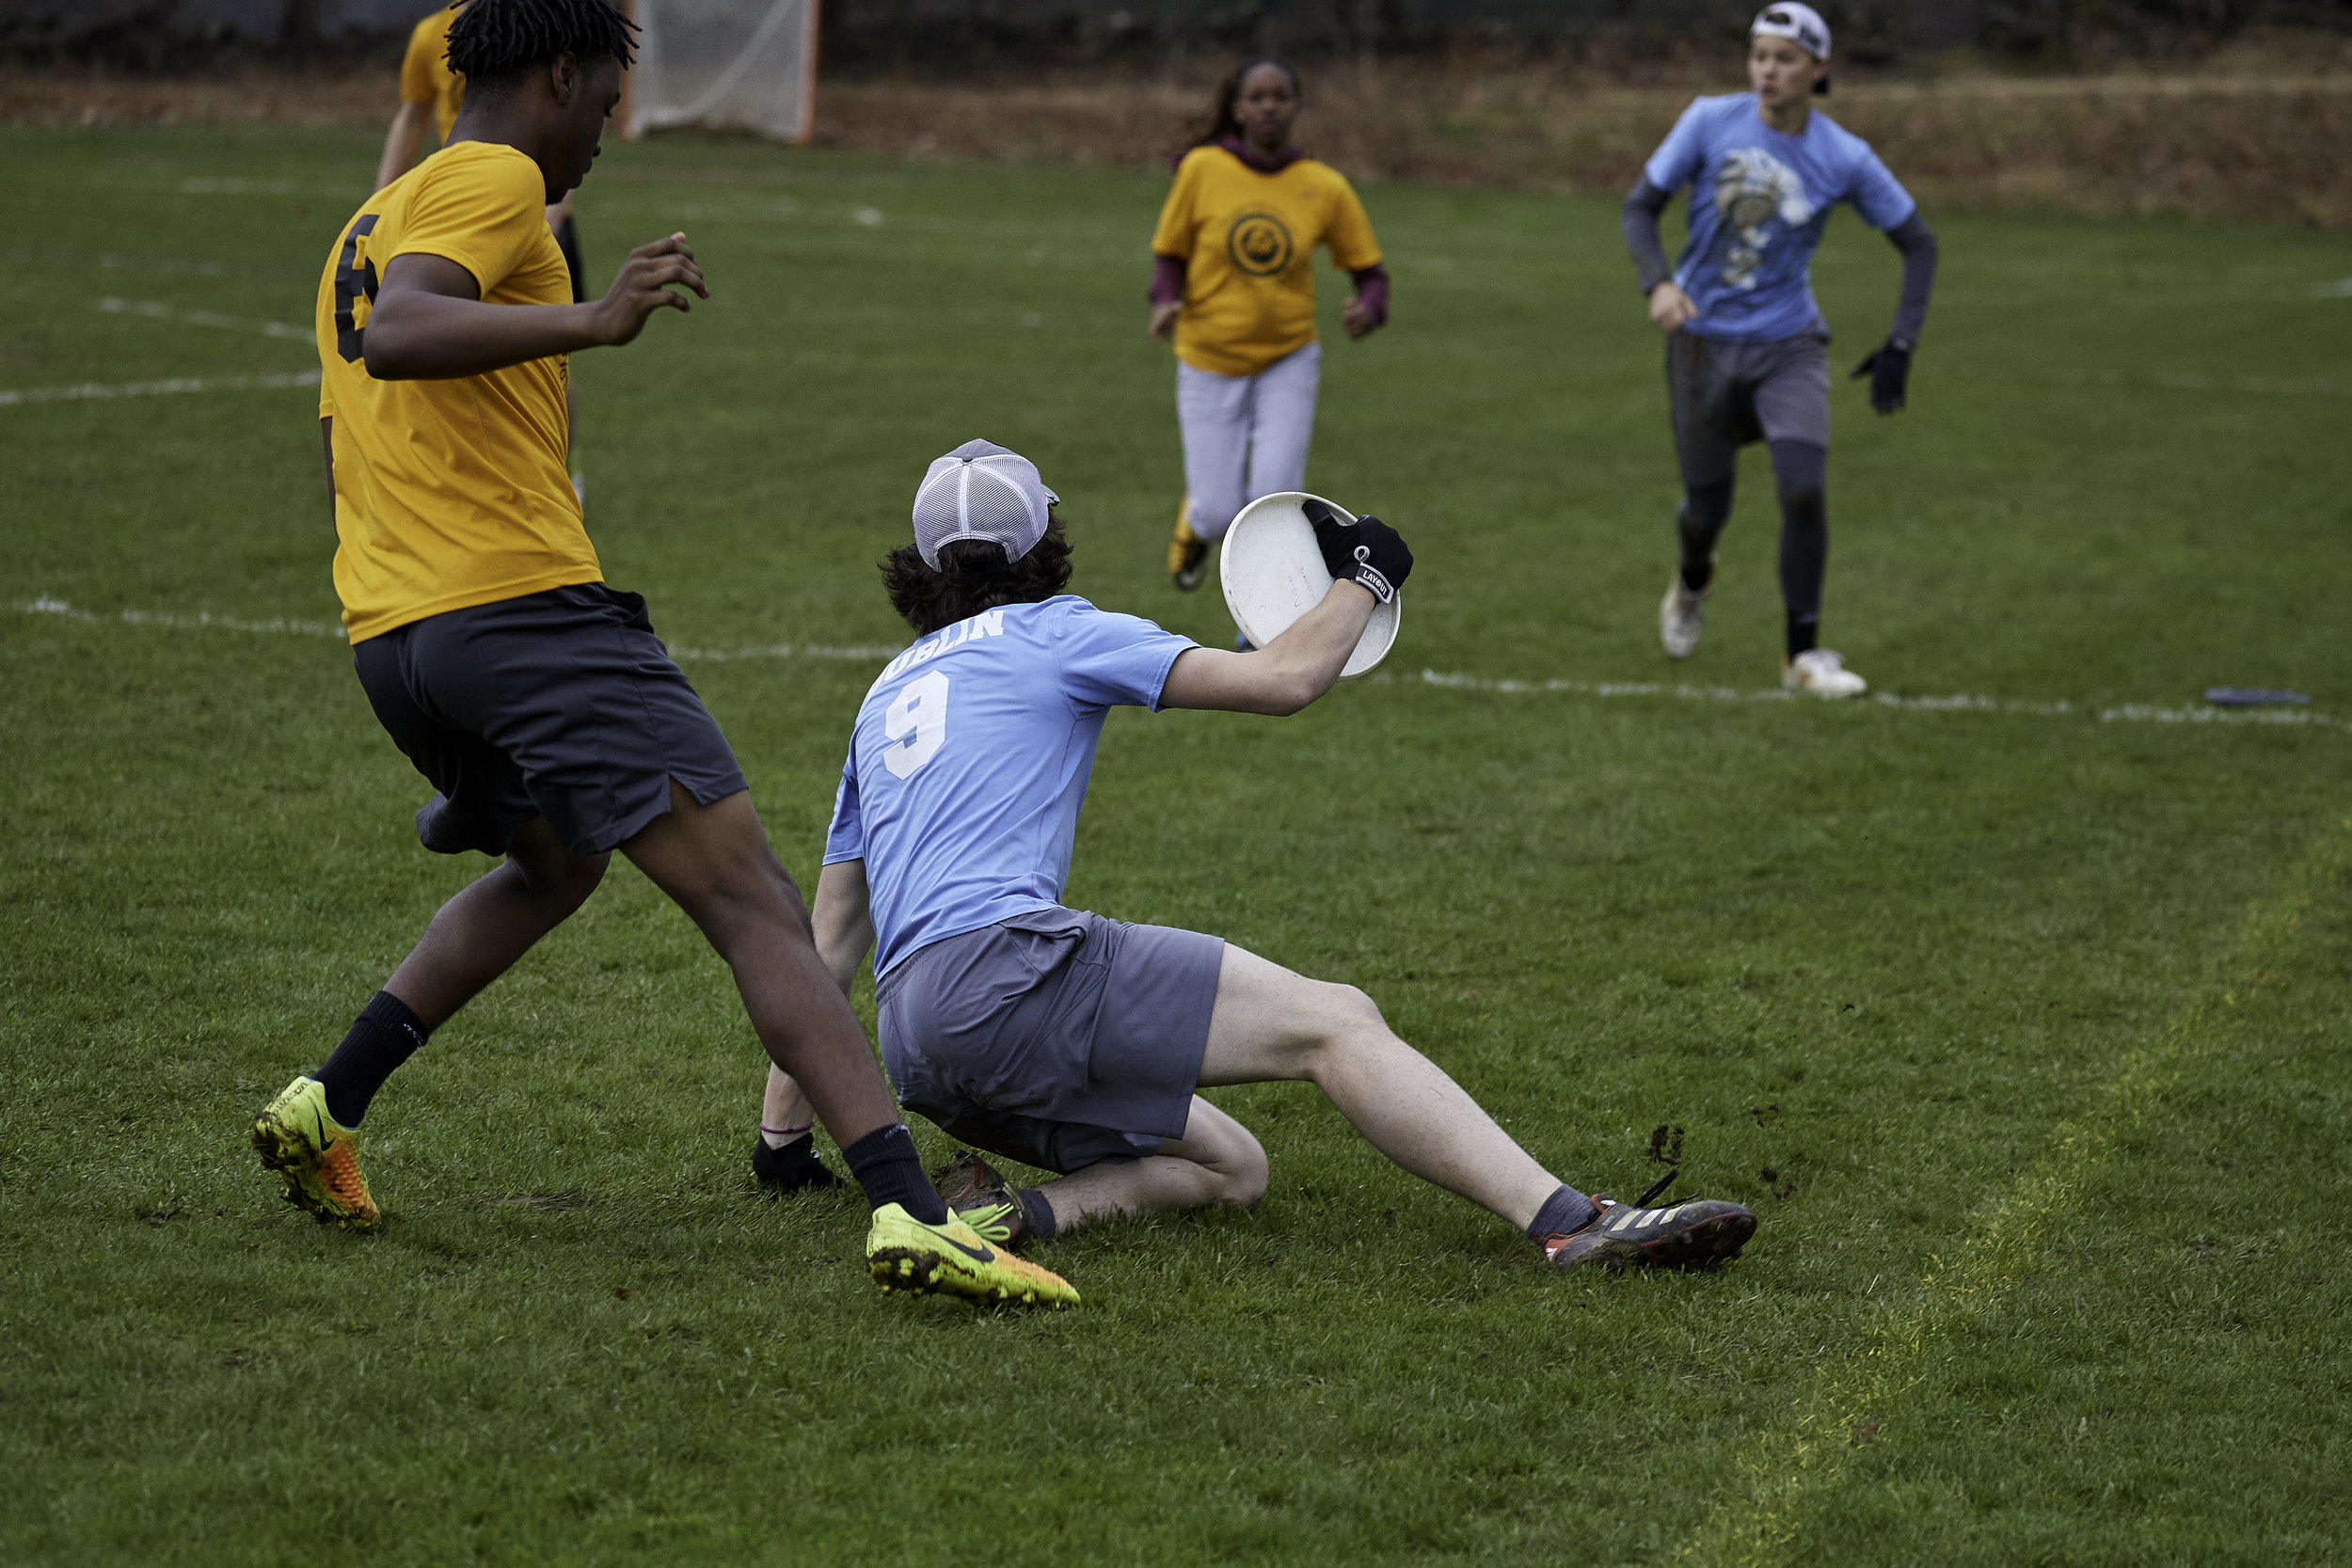 Ultimate Frisbee vs. Eagle Hill School - May 3, 2019 - 188303.jpg